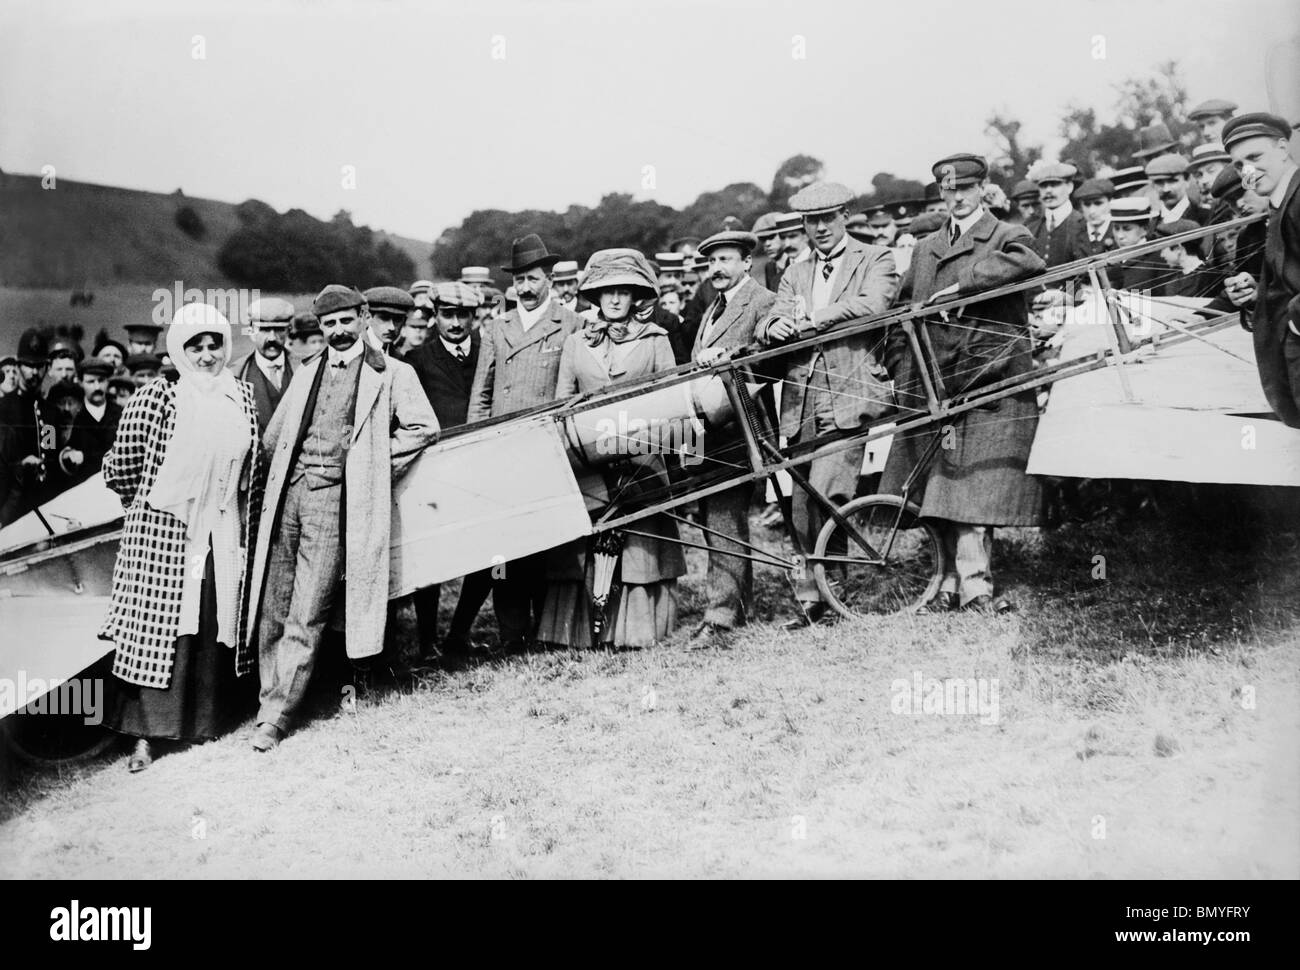 Aviator Louis Blériot (1872 – 1936) + wife in front of his plane after his historic first flight across English - Stock Image